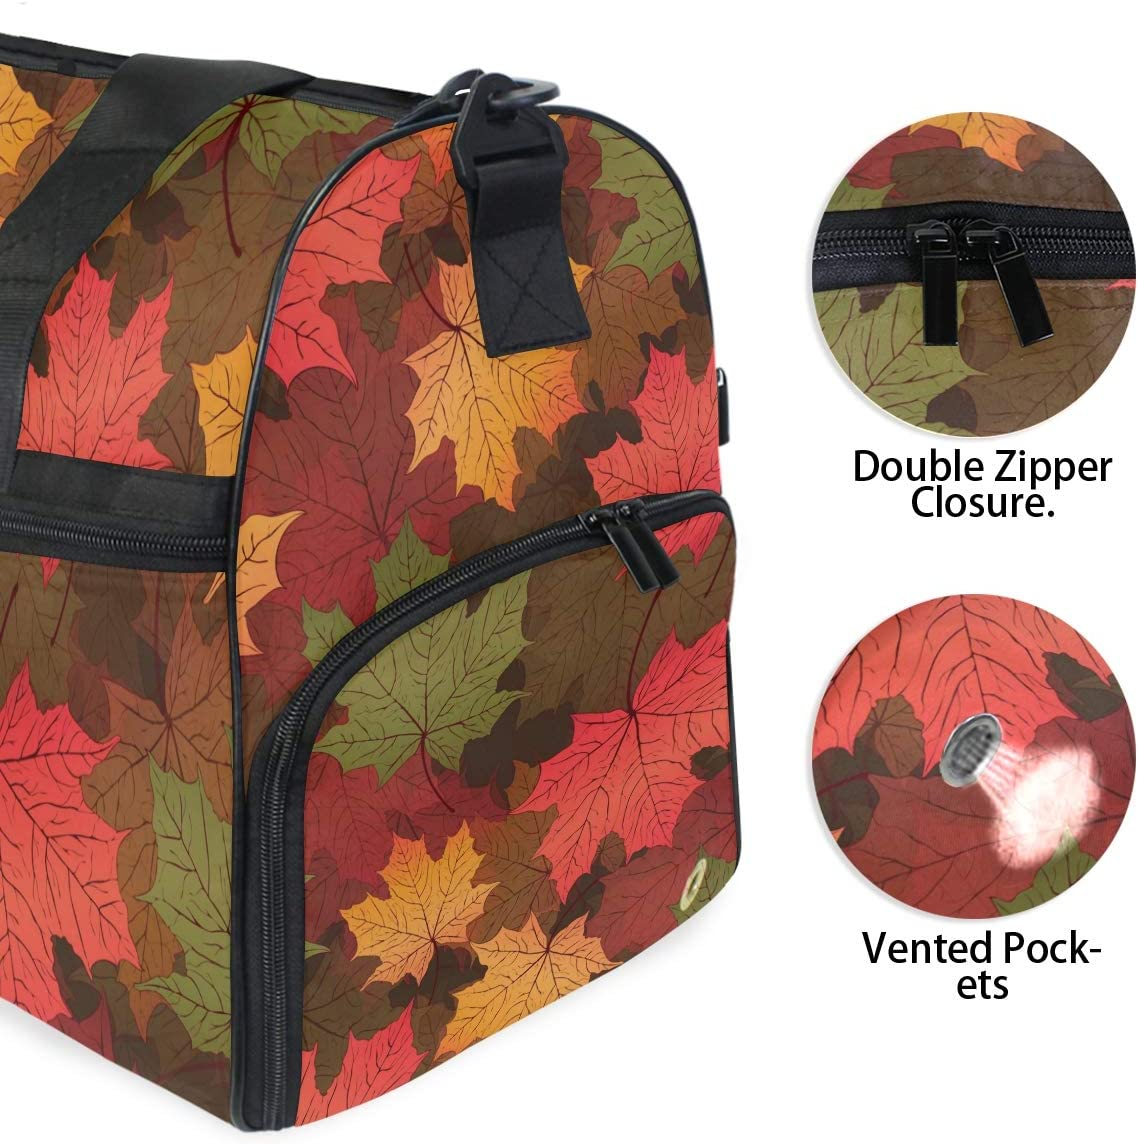 FAJRO Gym Bag Travel Duffel Express Weekender Bag Autumn Red Maple Leaves Pattern Carry On Luggage with Shoe Pouch